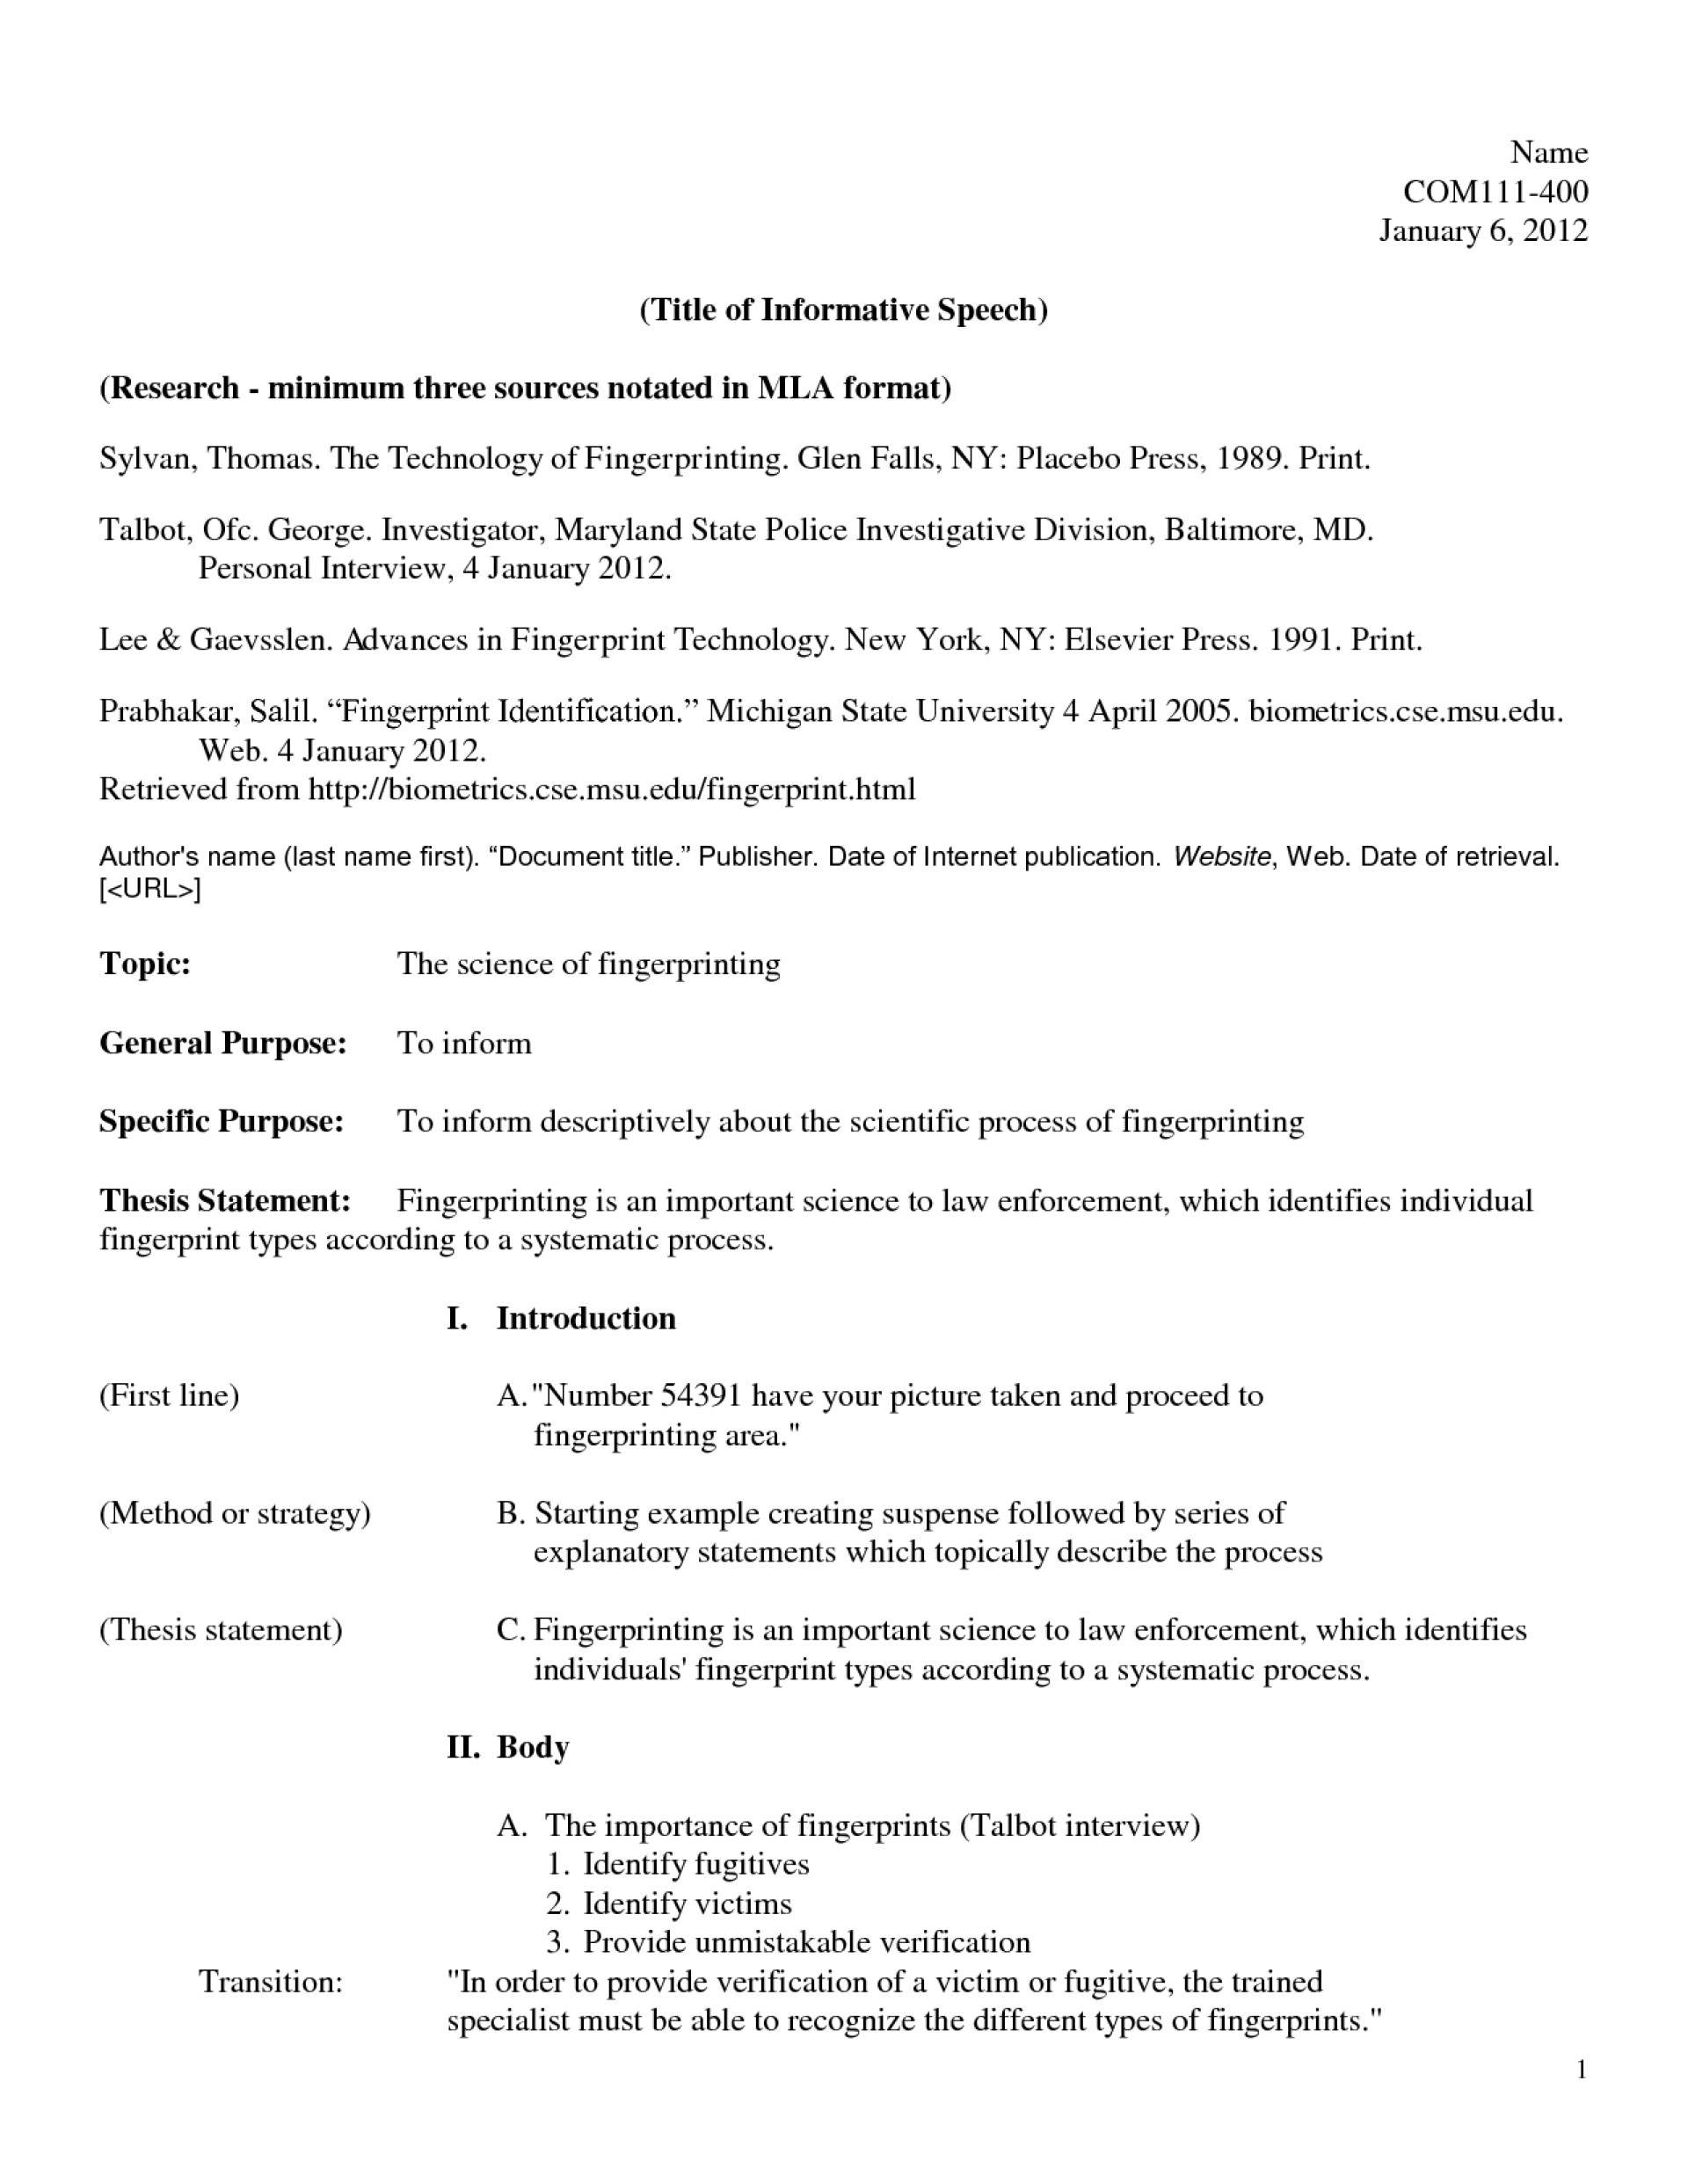 018 Informative Speech Outline Example Mla 472980 How To Write An Sensational Essay 4th Grade Thesis 1920